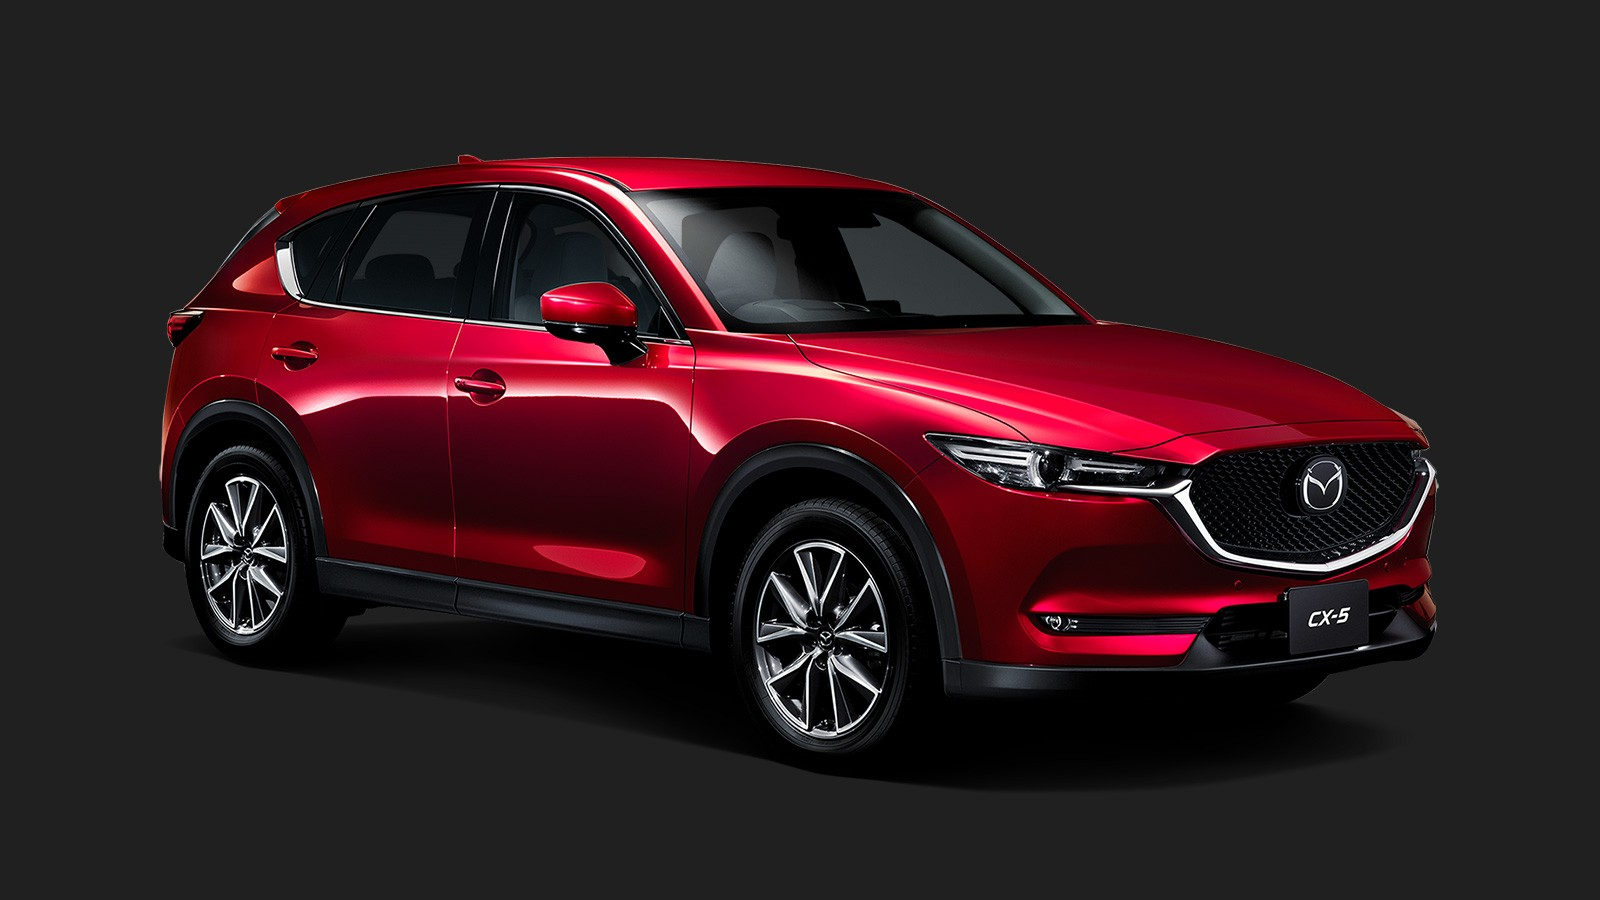 2017 mazda cx 5 getting 7 seat version in japan. Black Bedroom Furniture Sets. Home Design Ideas